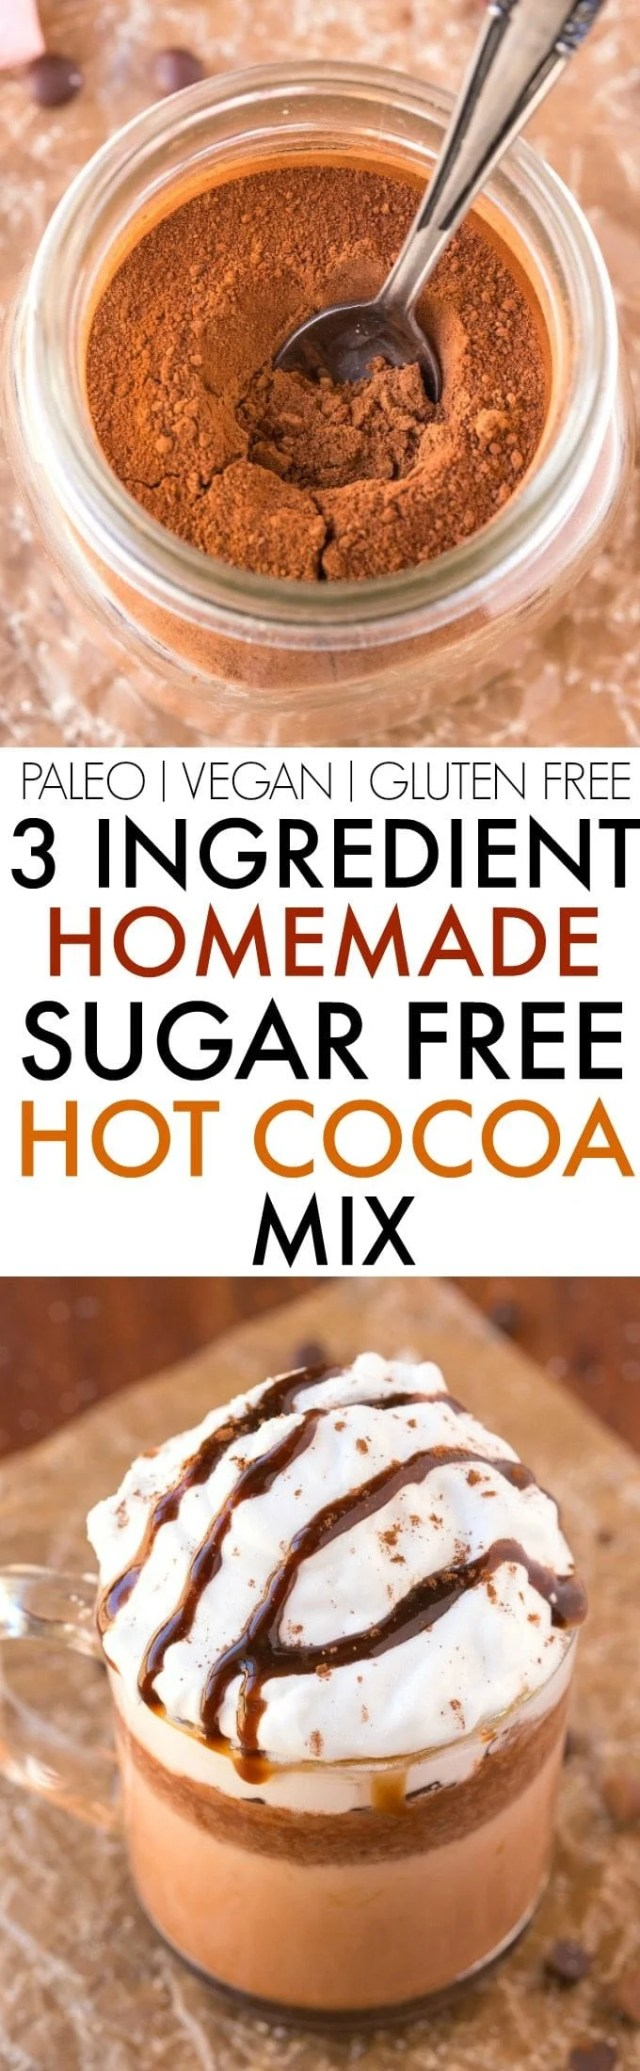 3 Ingredient Sugar Free Hot Chocolate Cocoa Mix (V, GF, Paleo)- Easy, healthy, creamy hot chocolate mix perfect for gifting and made with NO nasties or fillers- Just add water or milk! {vegan, gluten free, paleo recipe}- thebigmansworld.com